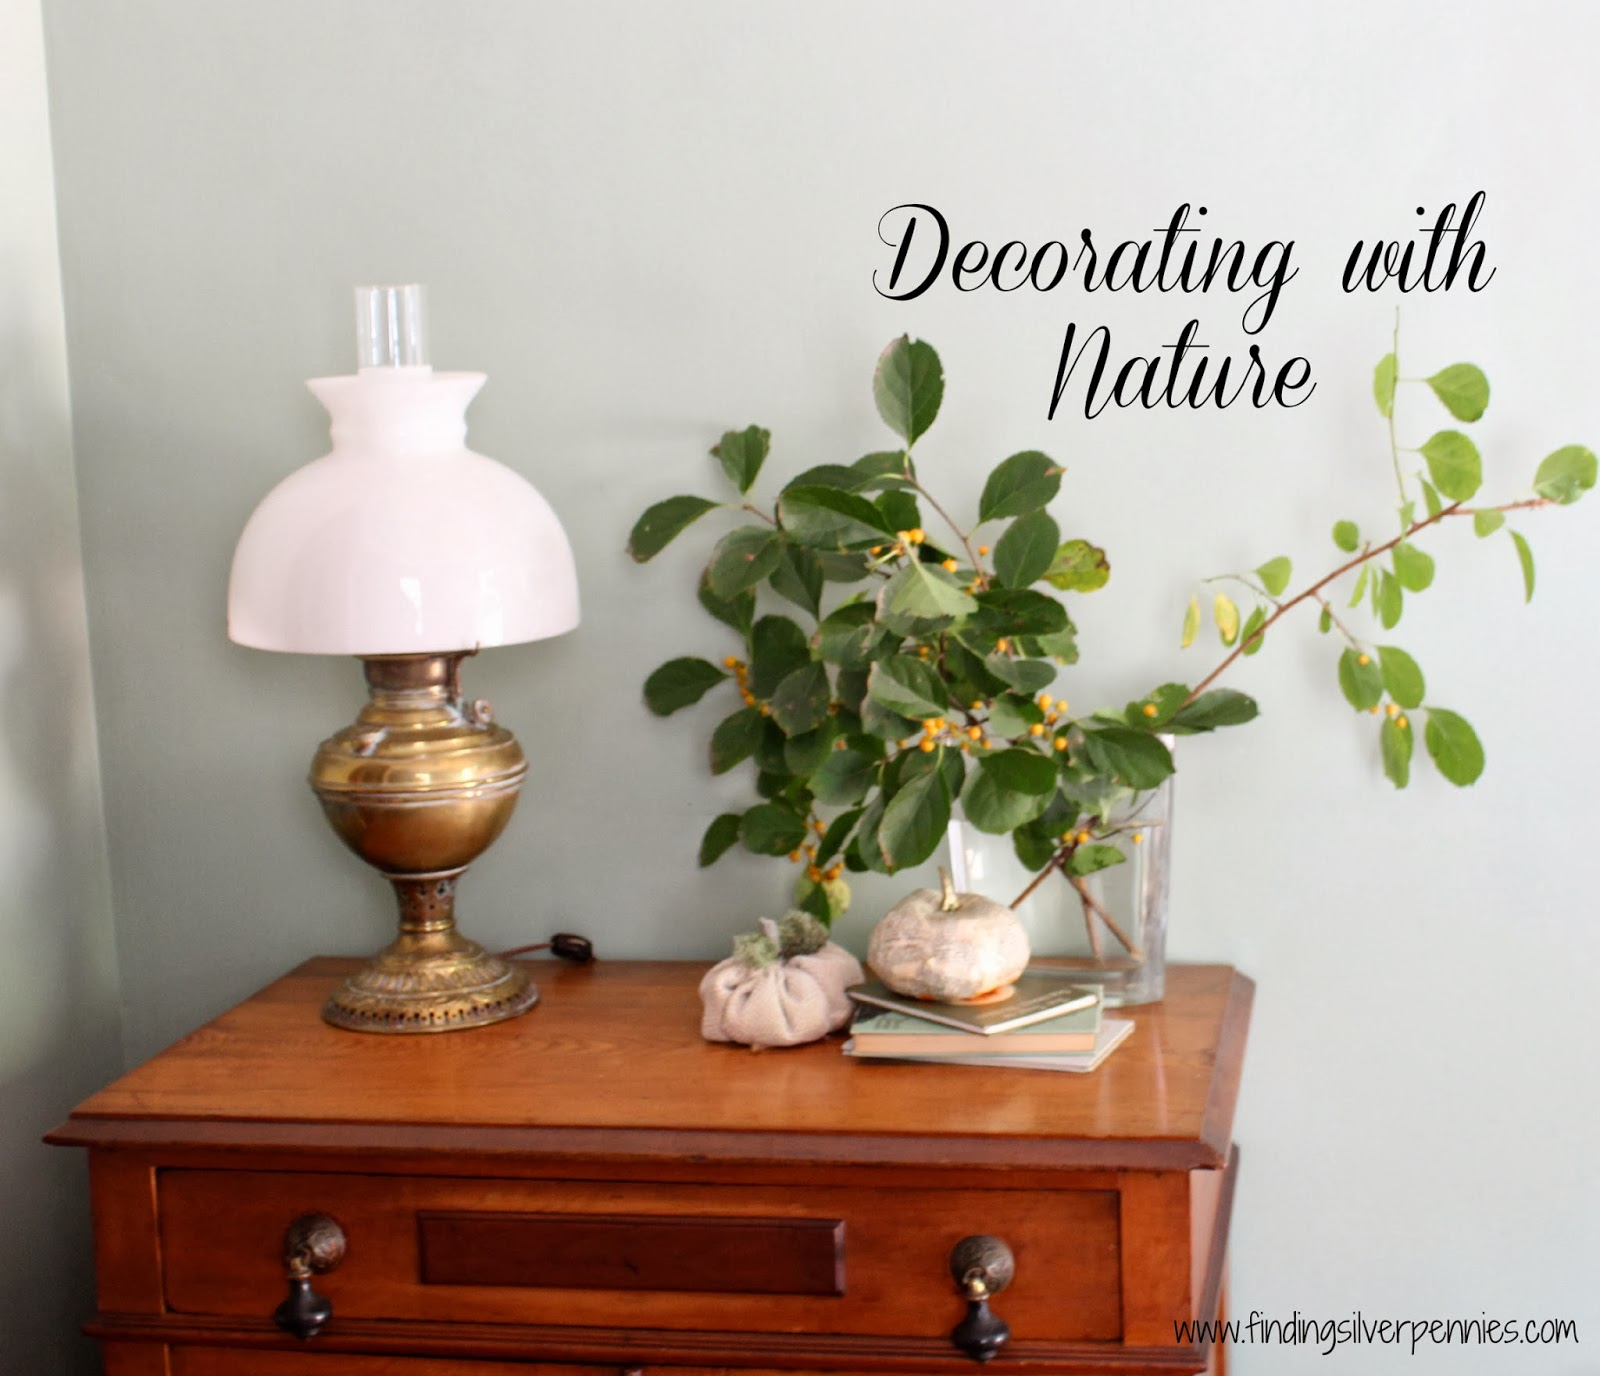 Decorating with Nature - Finding Silver Pennies